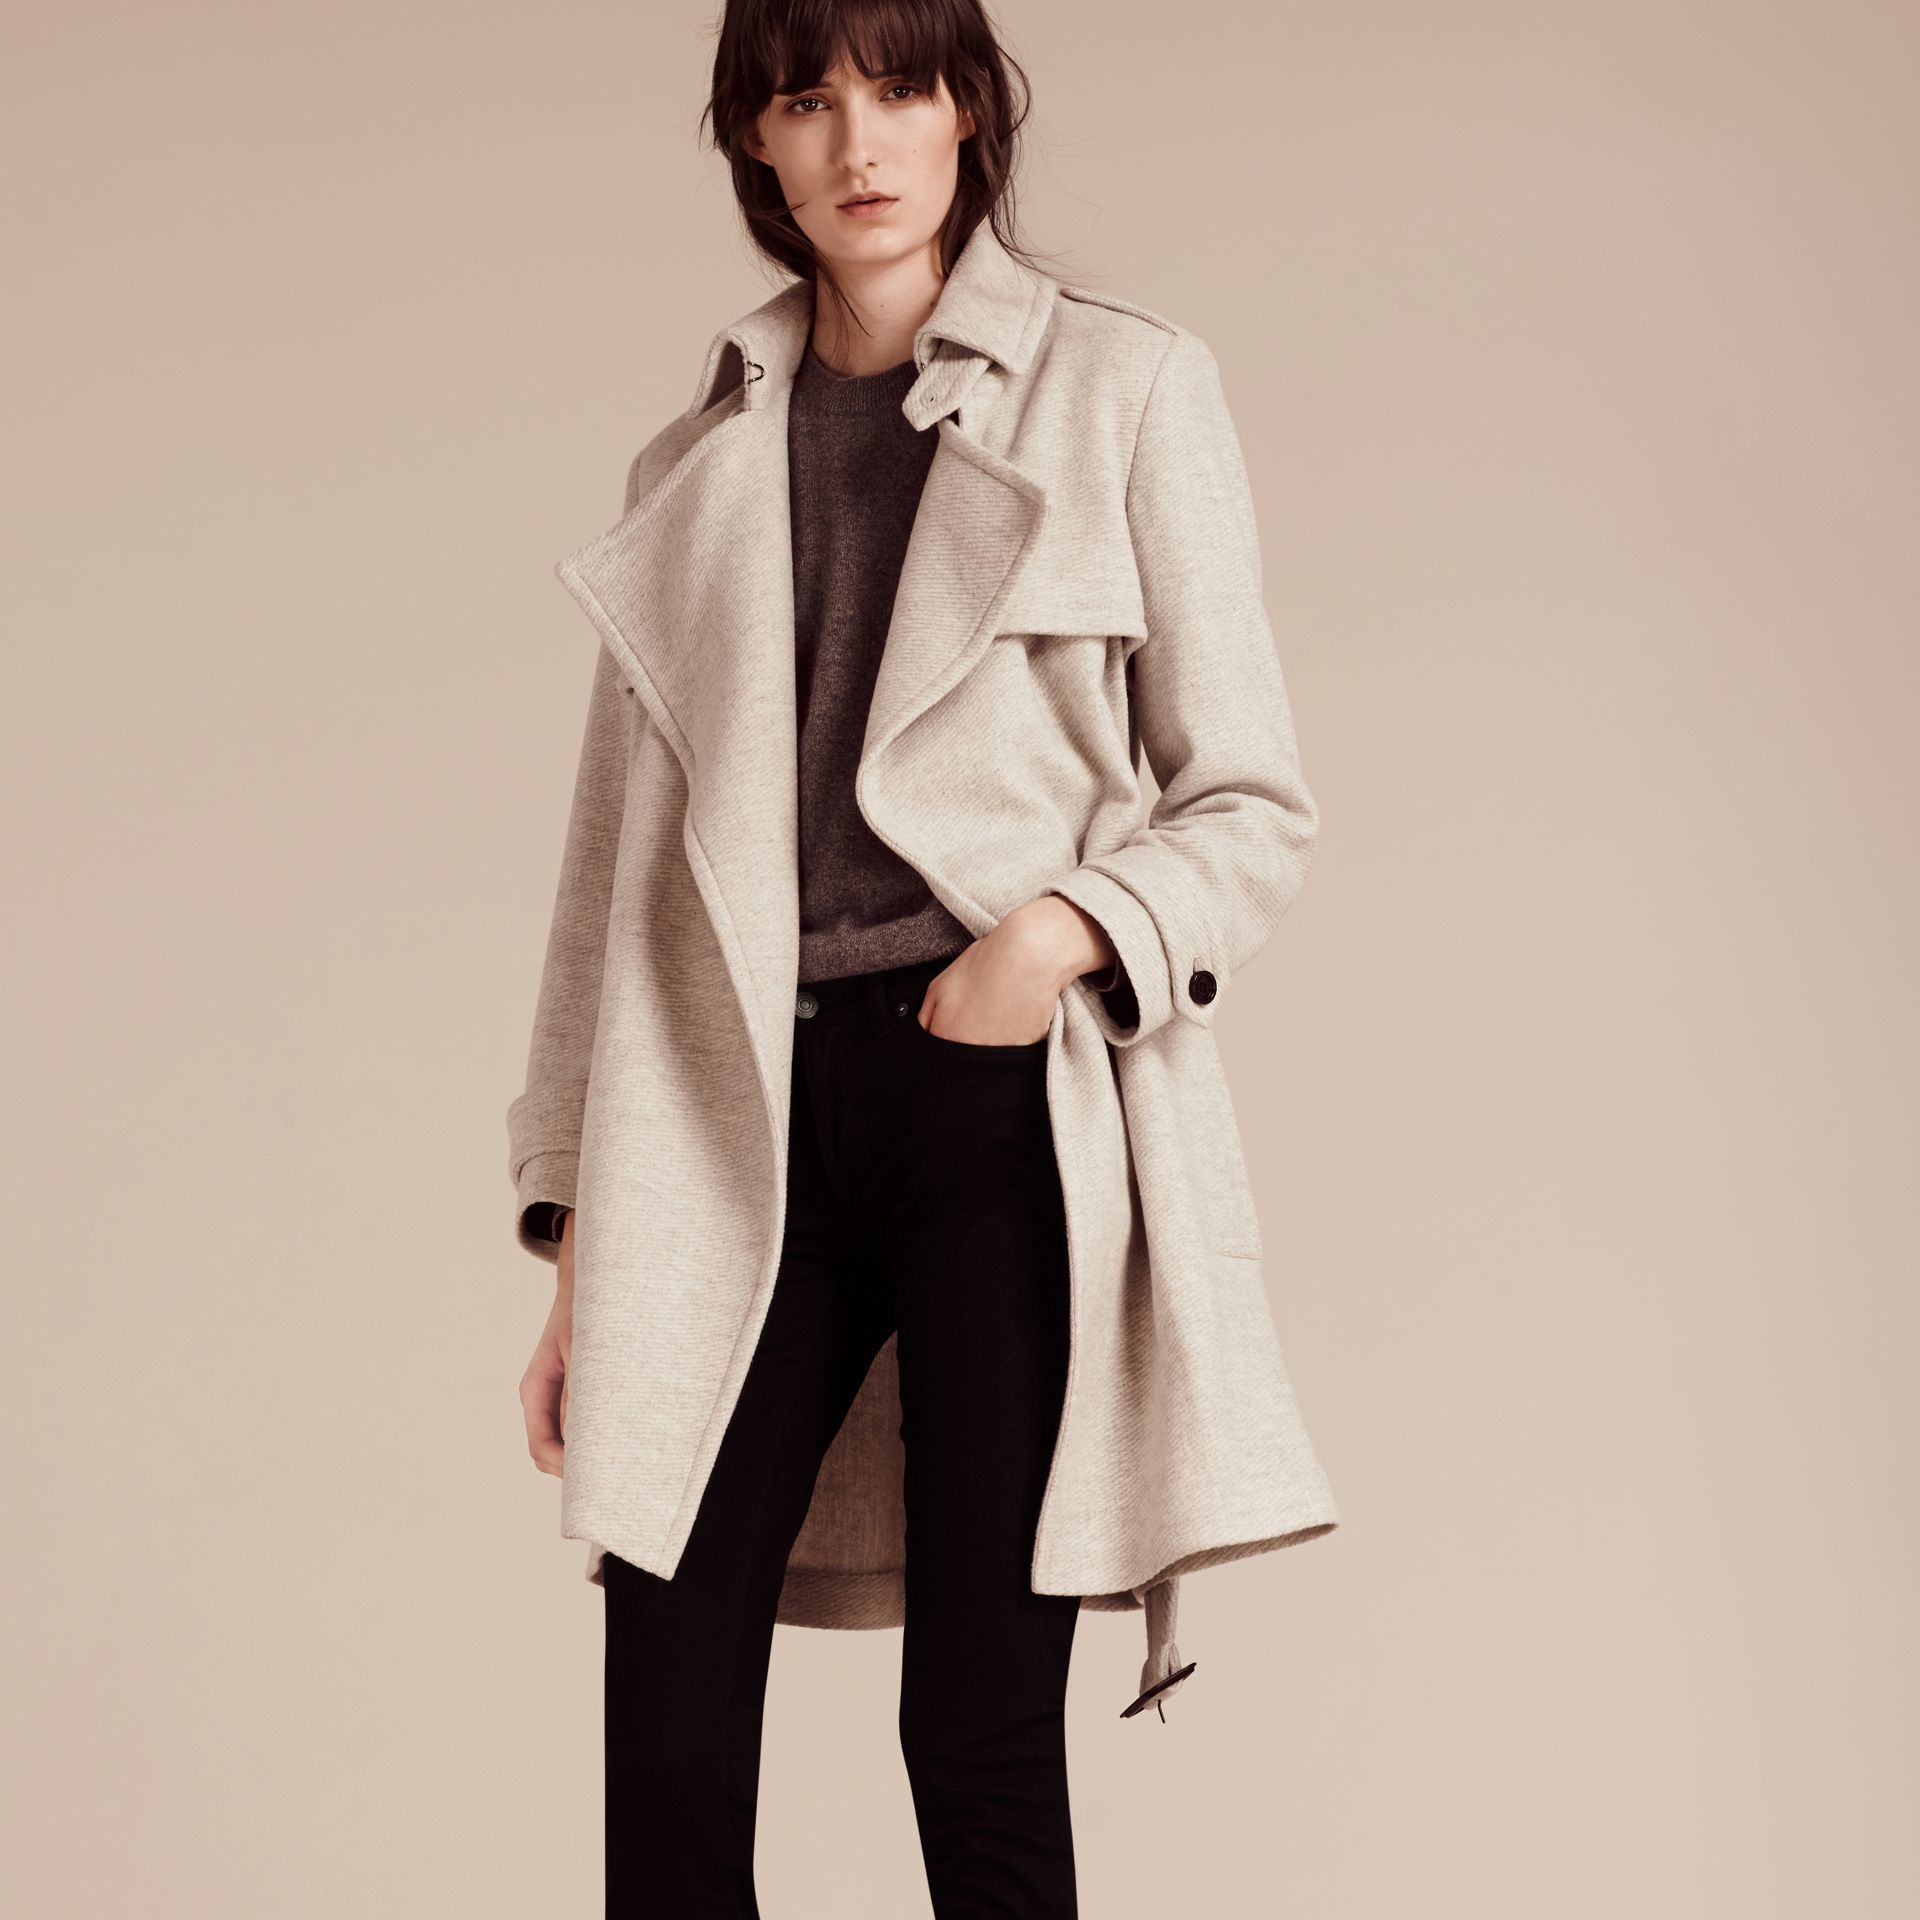 Blanc/gris Trench-coat portefeuille en cachemire - photo de la galerie 7